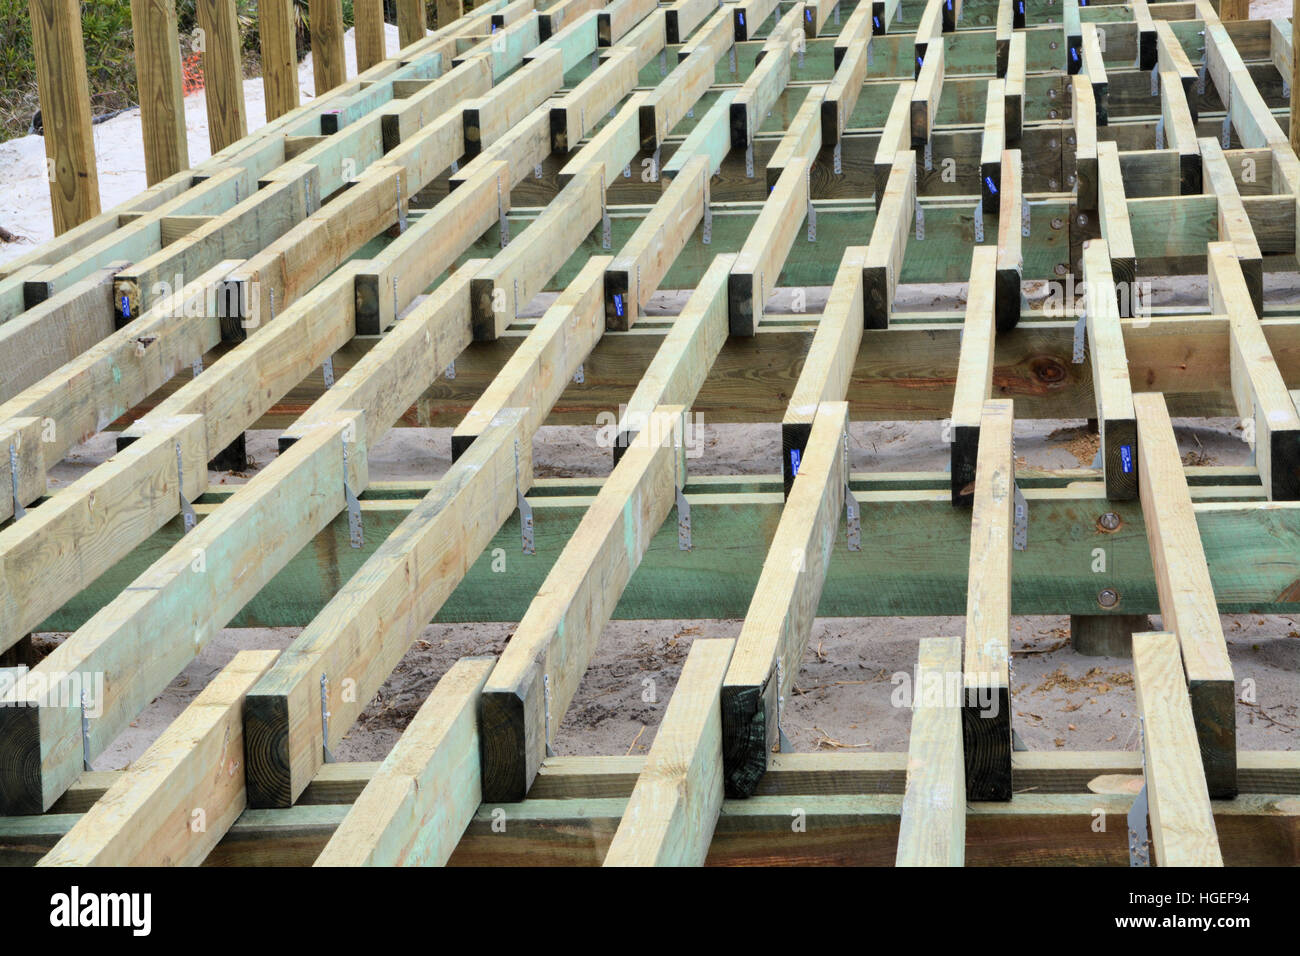 Deck boards stock photos images alamy